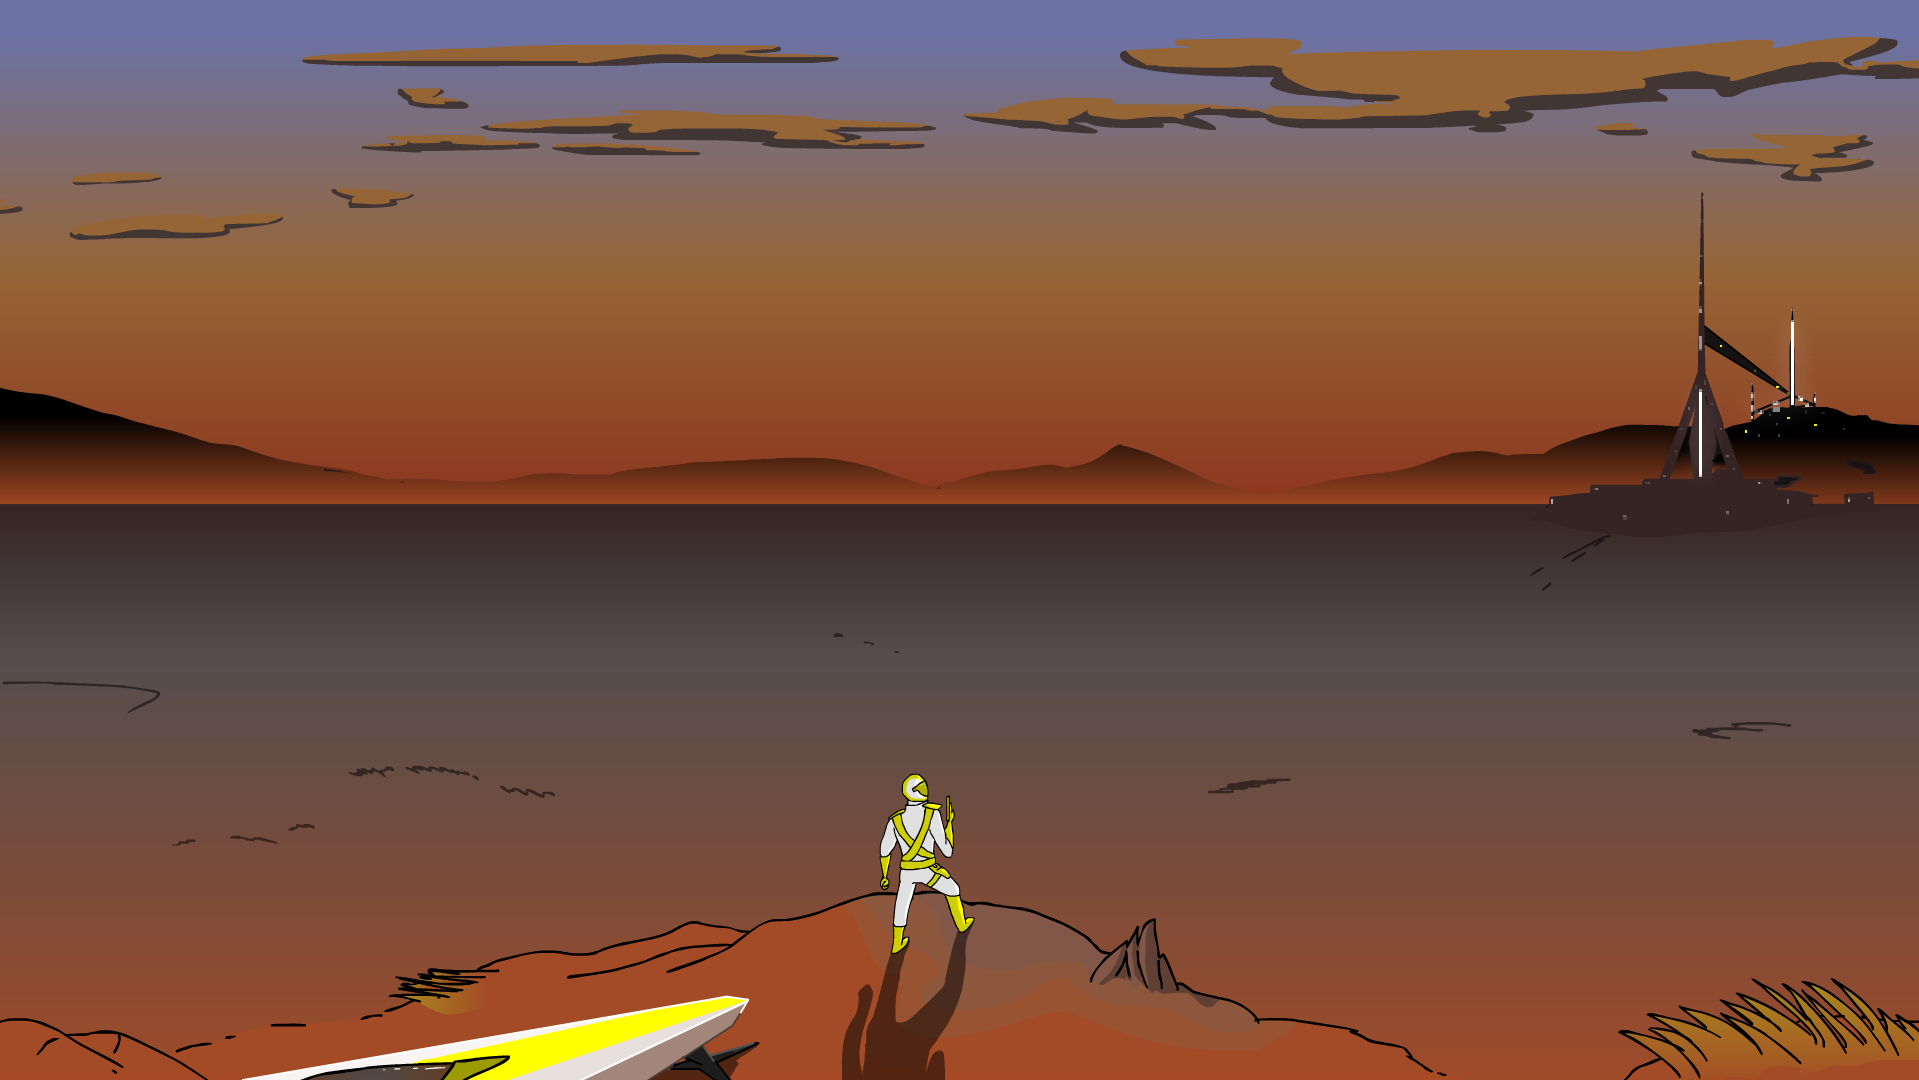 Mars in the Distant Future